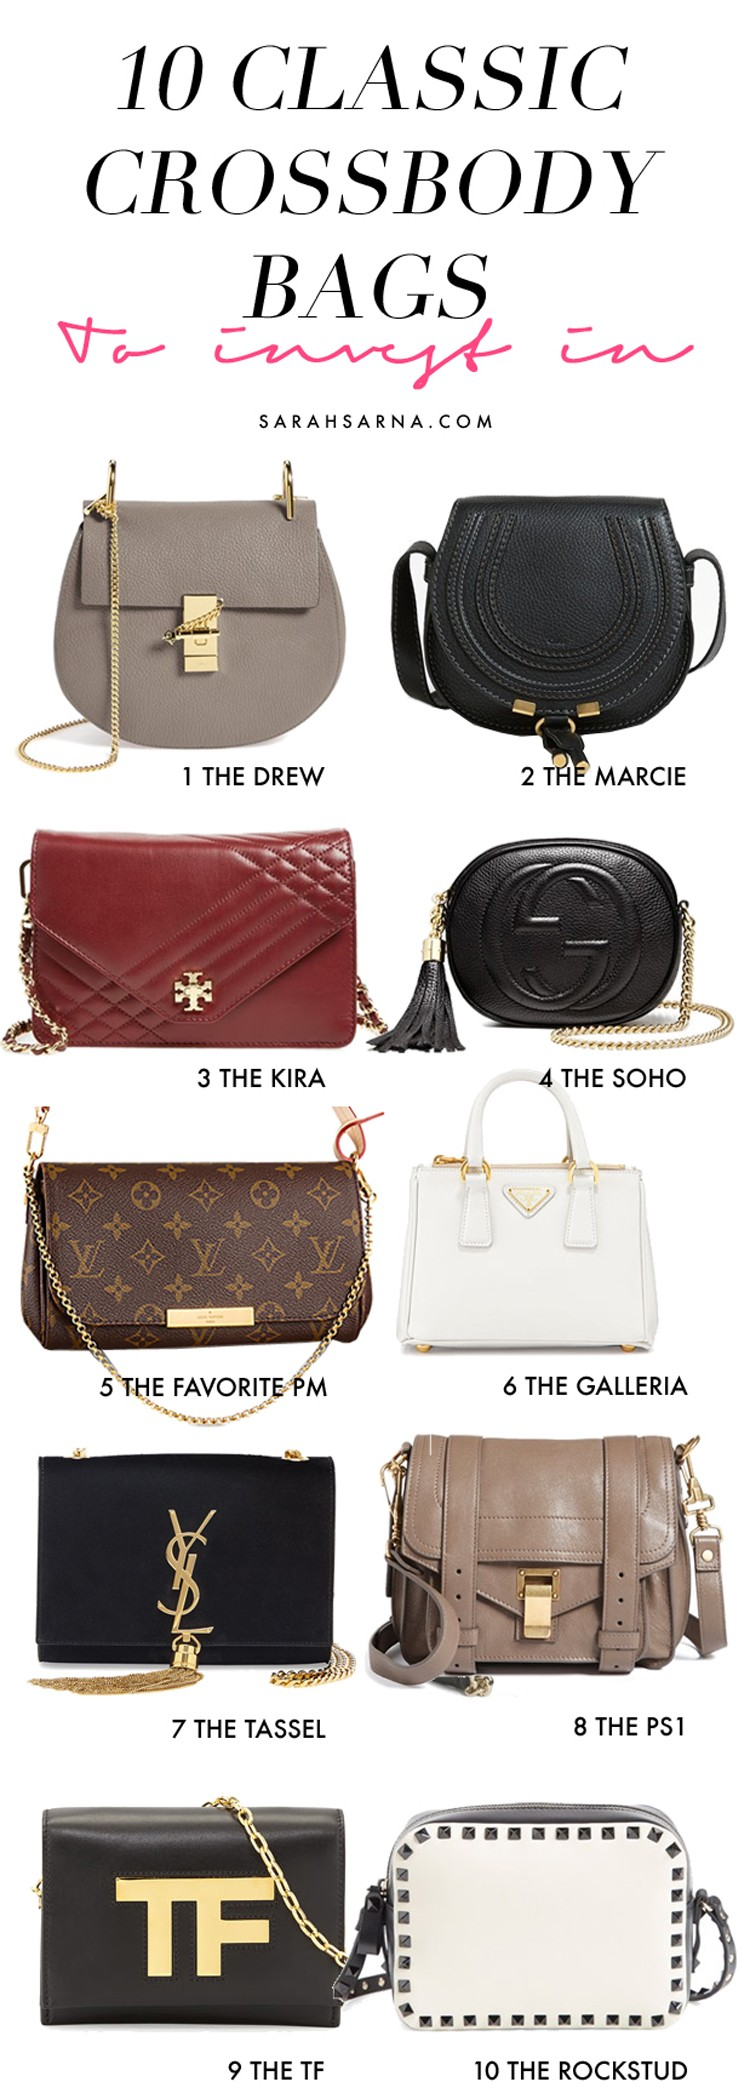 b1d7c3c3b 10 Classic Crossbody Bags to Invest In